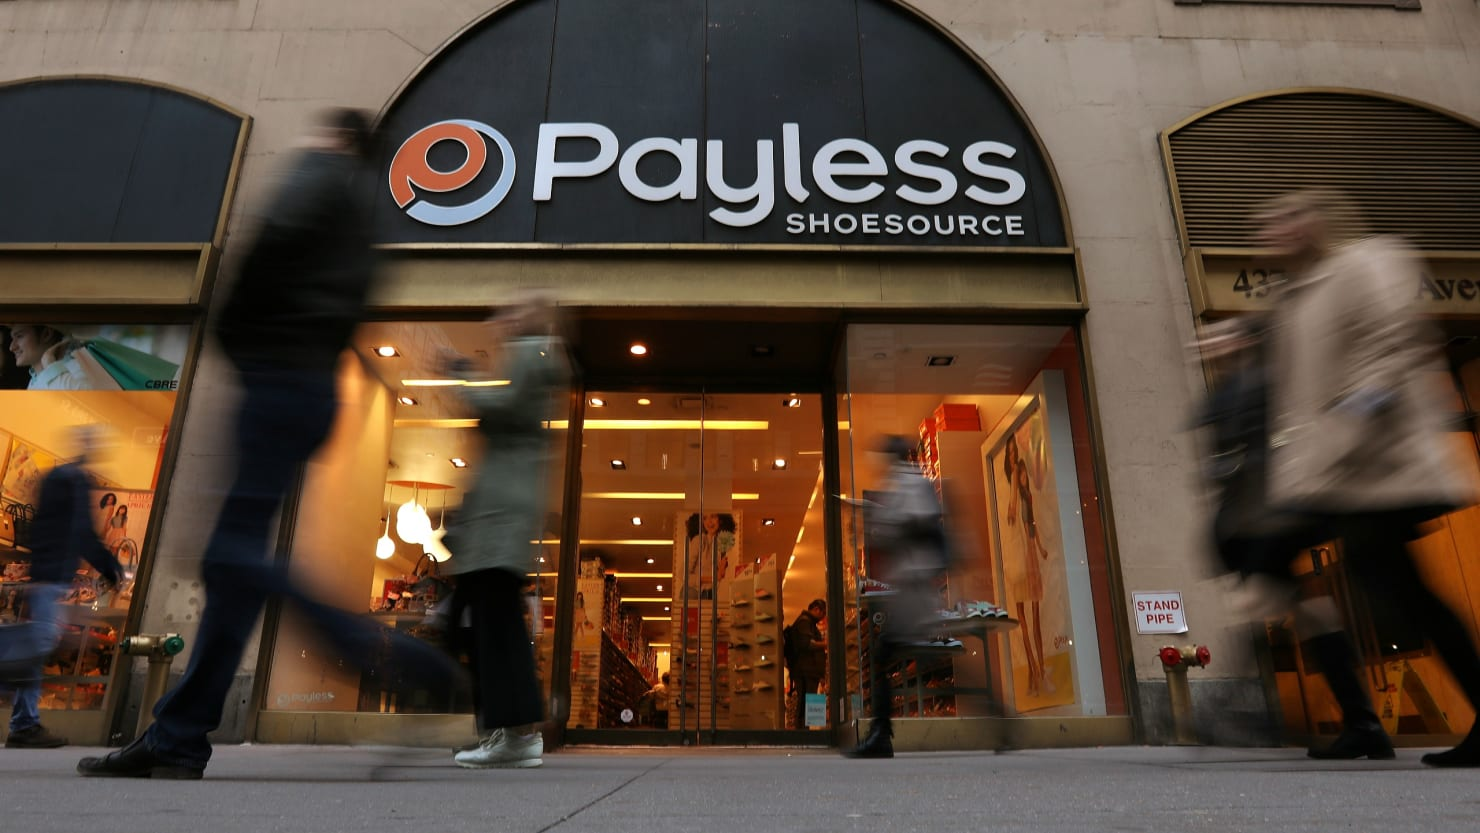 a9cd73add Falling Mirror Kills 2-Year-Old Girl at Payless Shoe Store